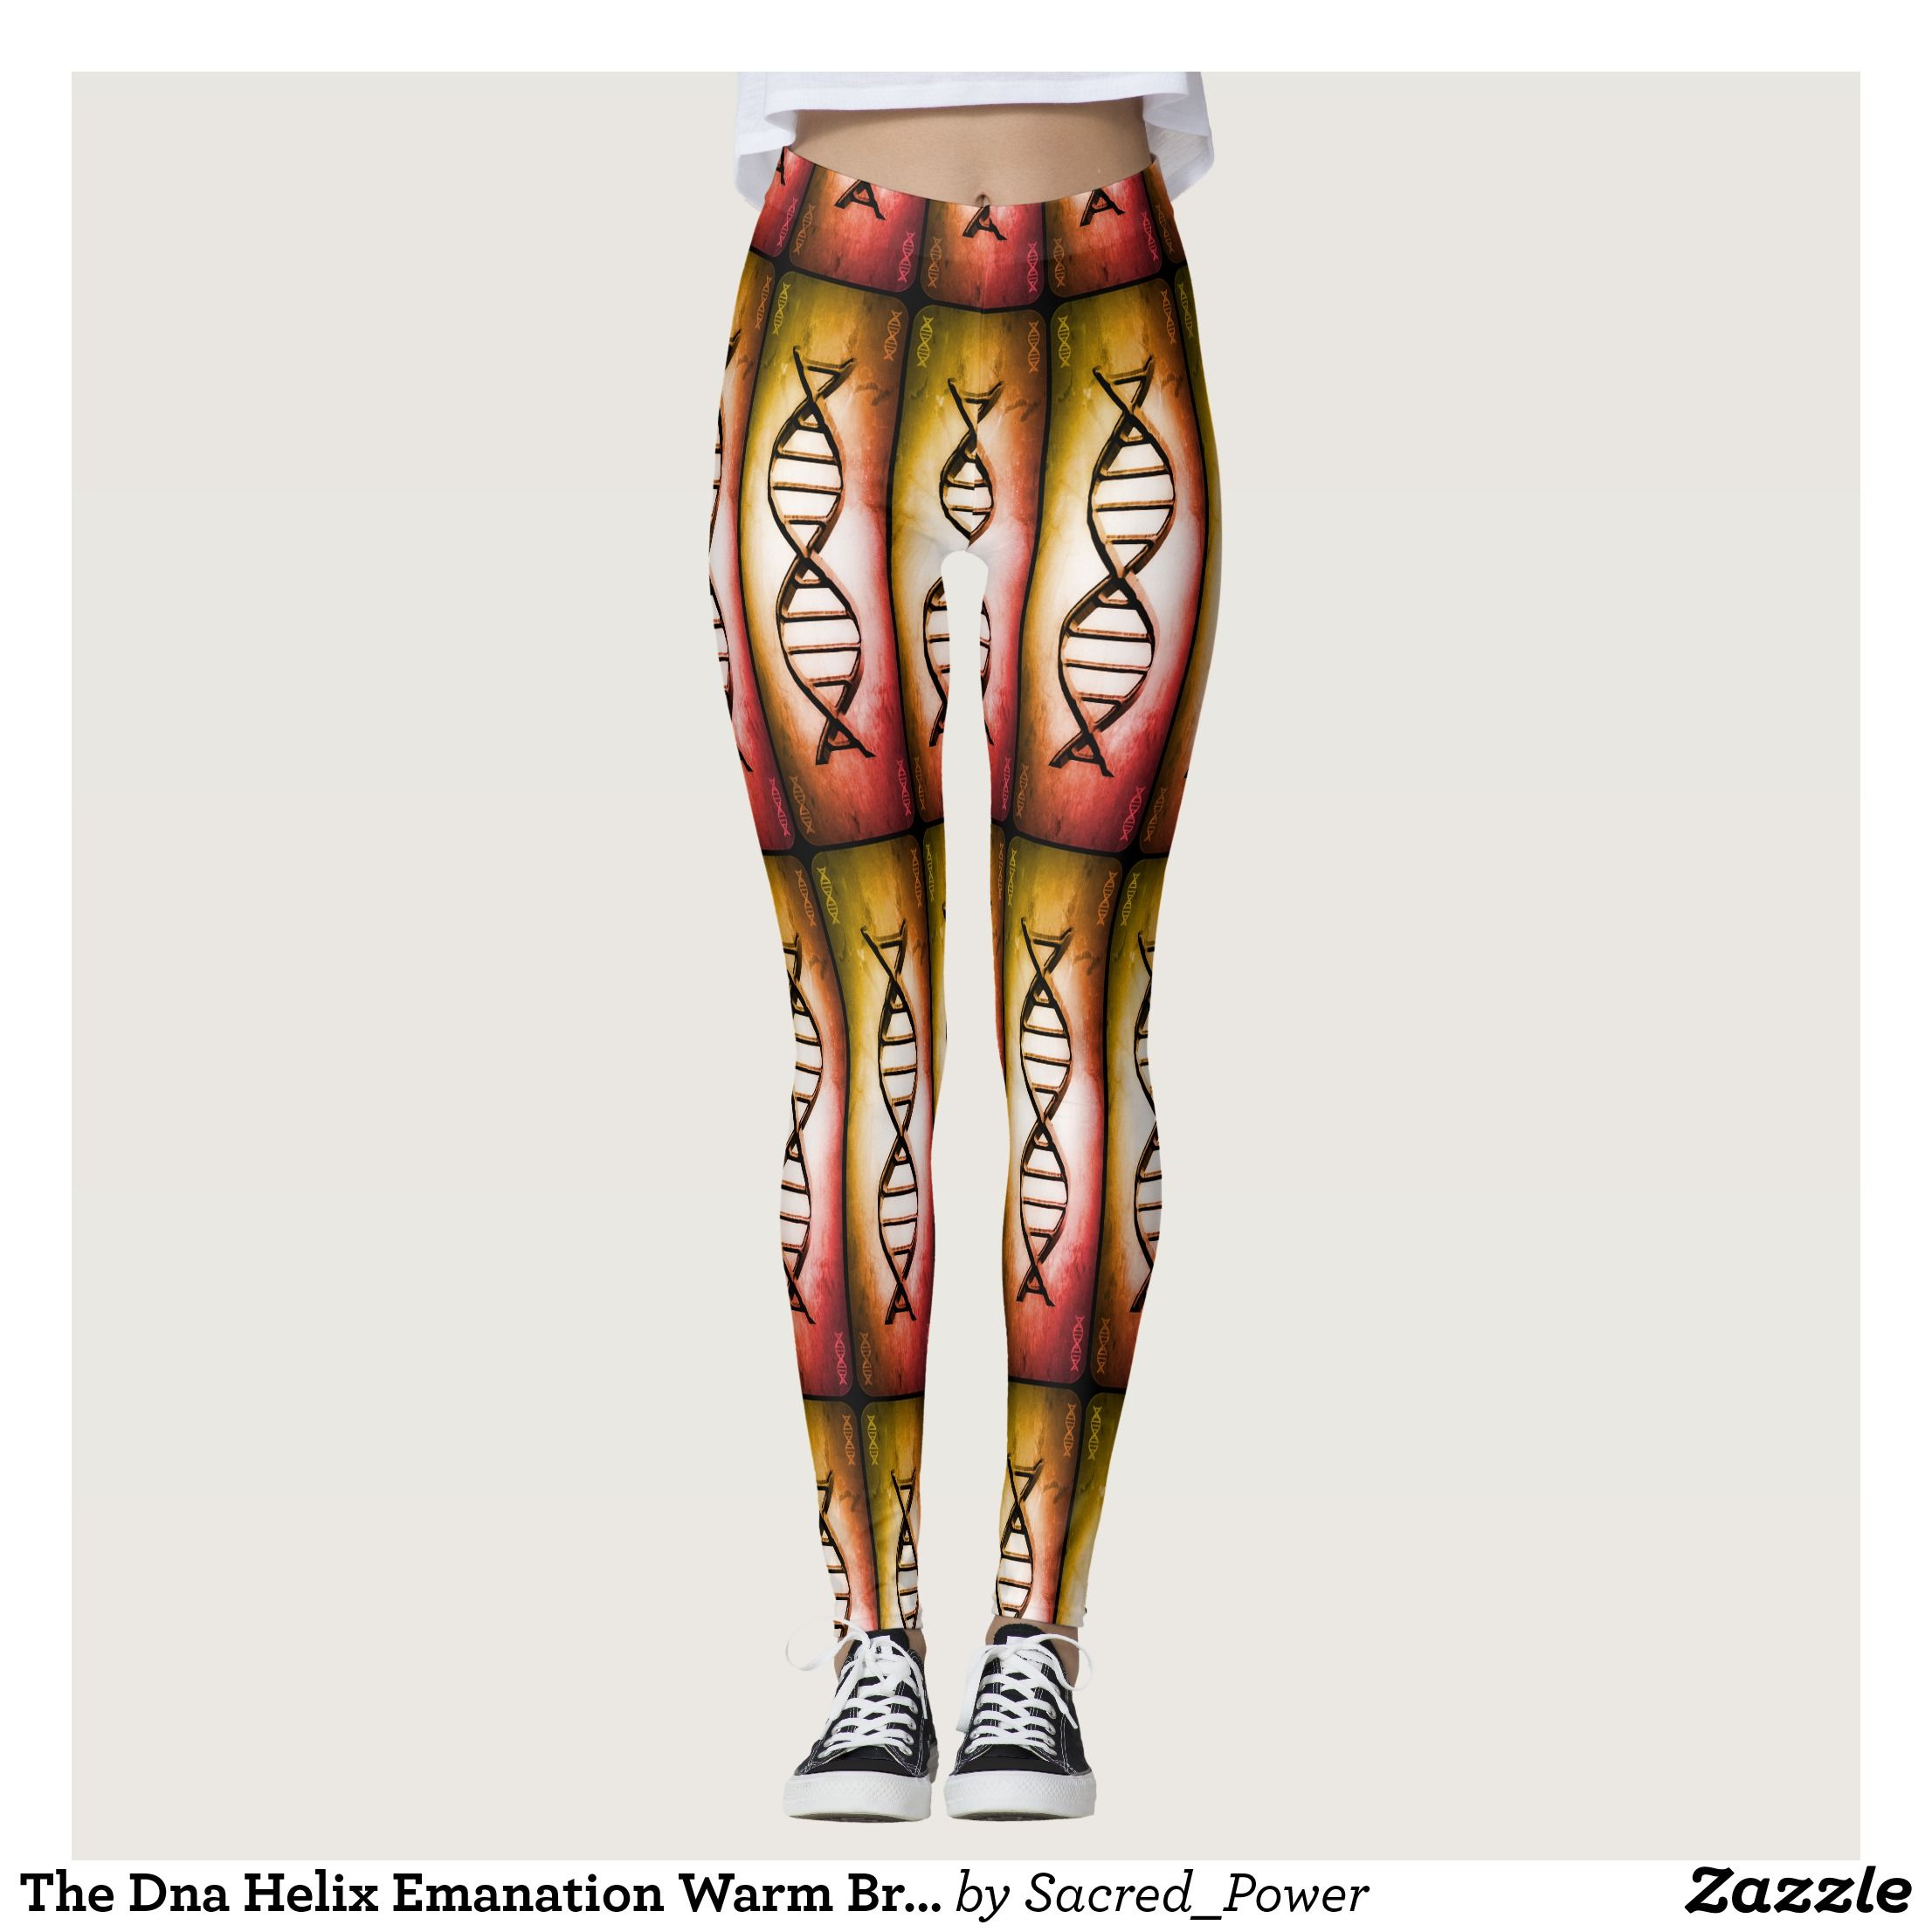 The Dna Helix Emanation Warm Bright Leggings Beautiful Yoga Pants